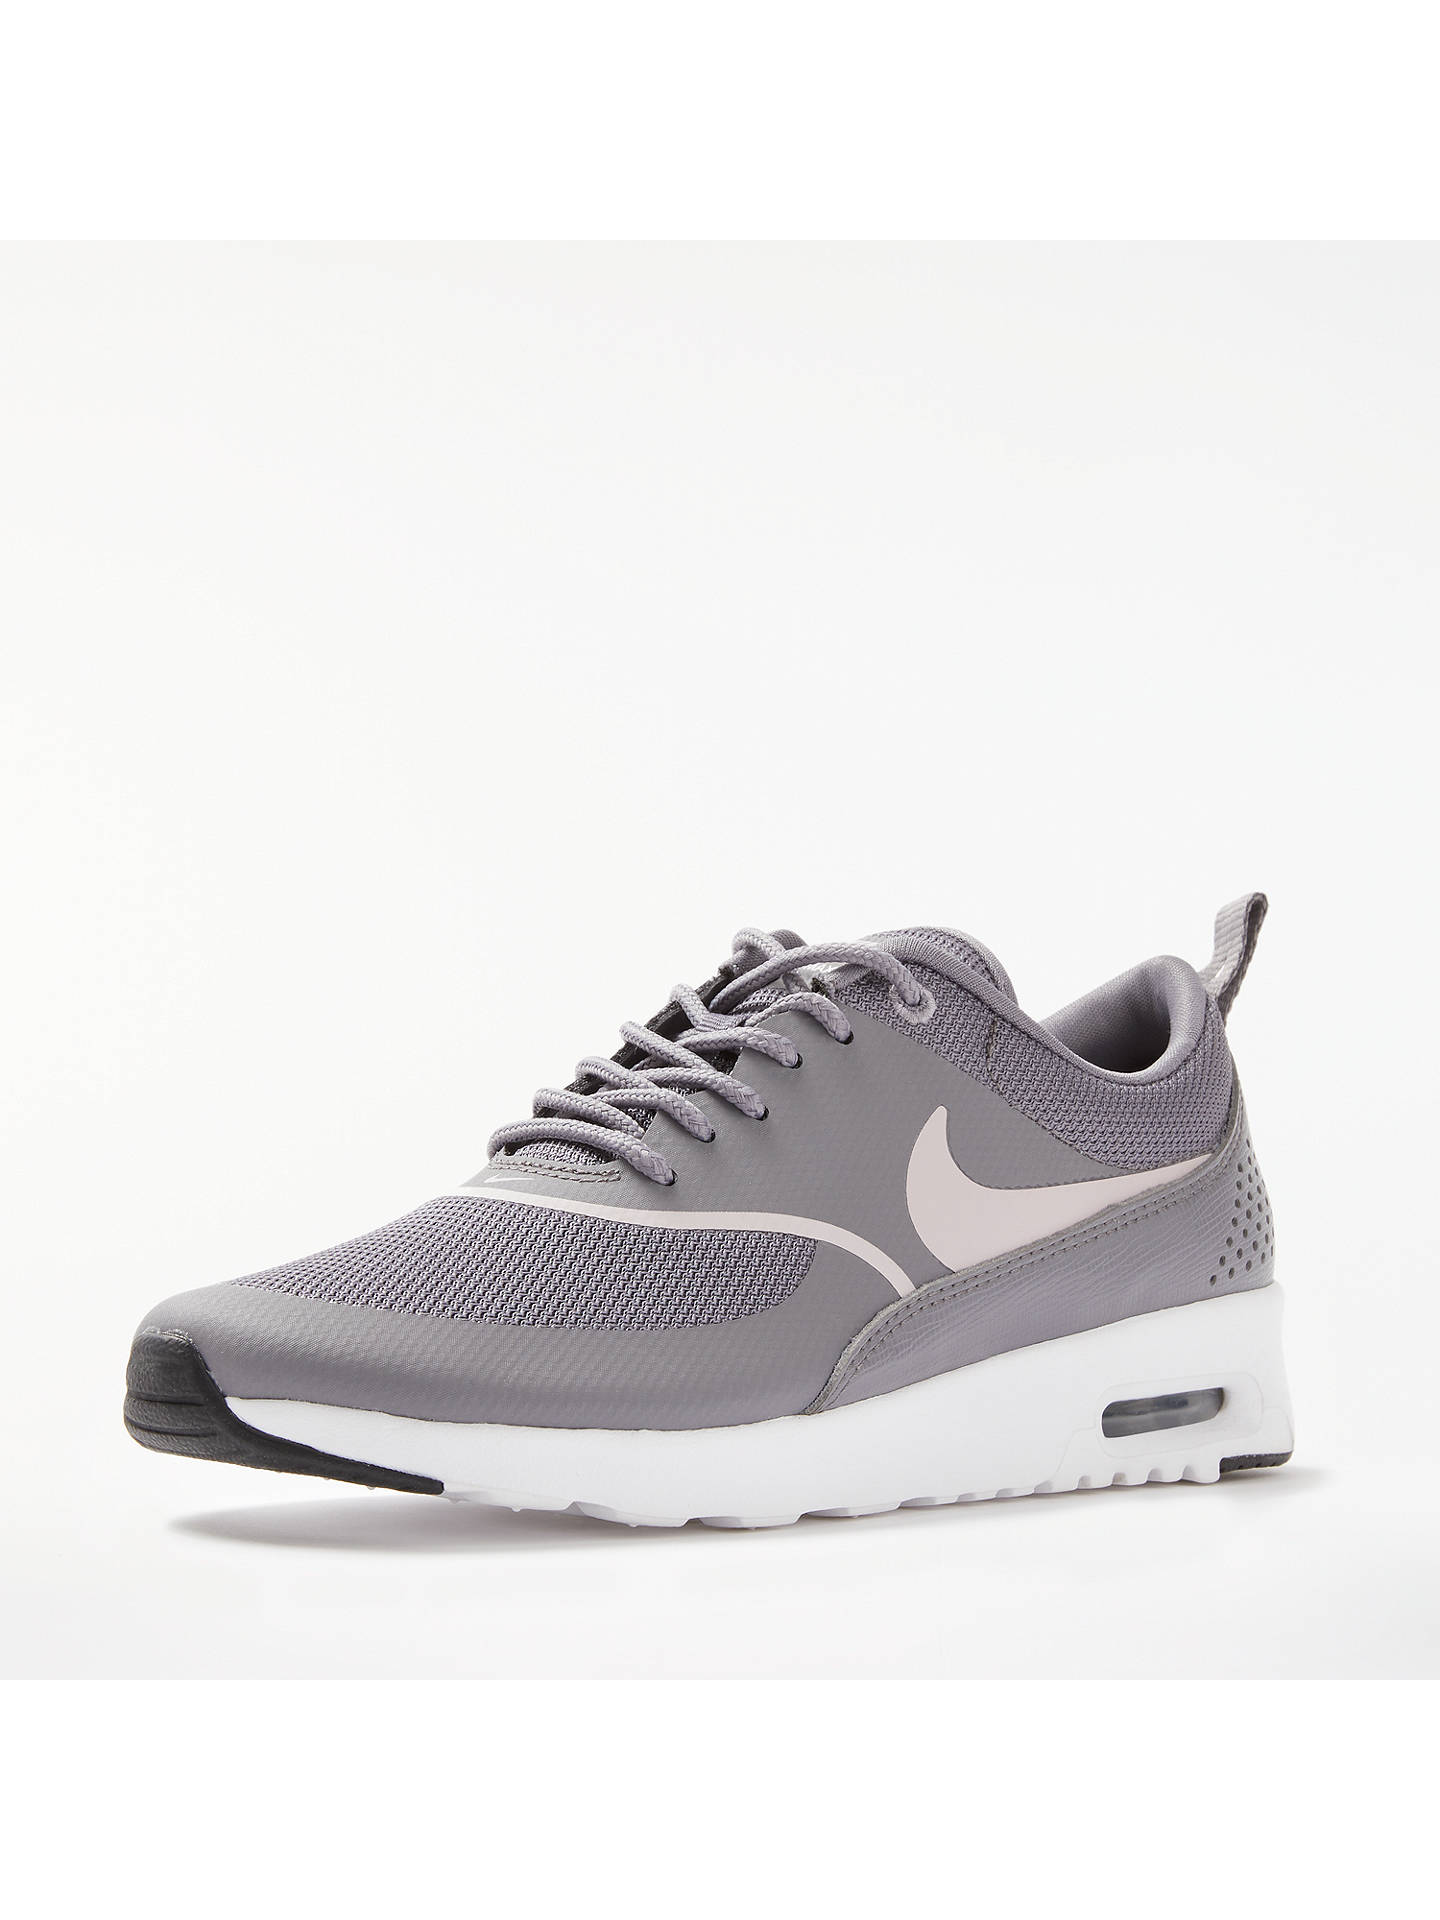 on sale e9614 bdb24 ... Buy Nike Air Max Thea Women s Trainers, Grey, 4 Online at johnlewis. ...